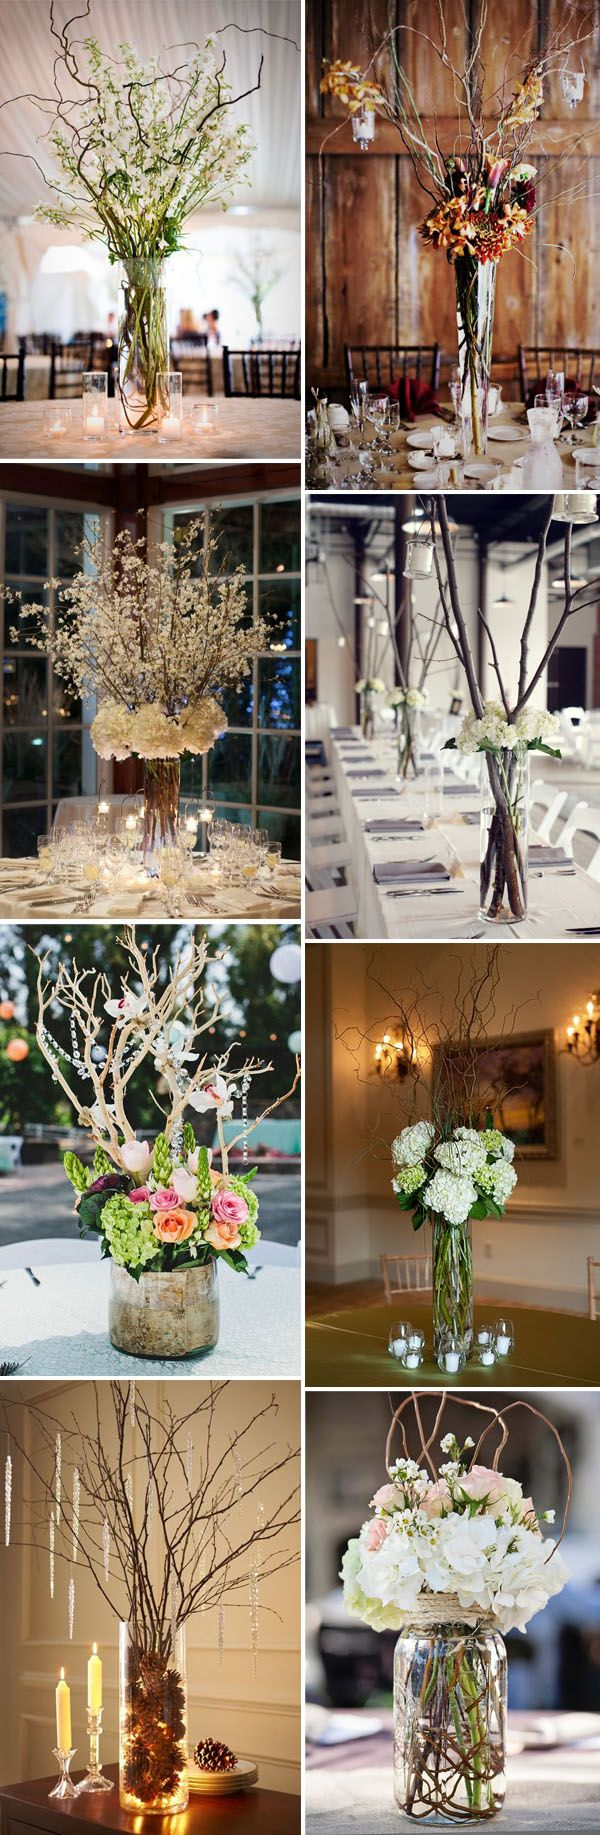 28 creative budget friendly diy wedding decoration ideas easy diy branchtwig and floral vase wedding centerpieces ideas junglespirit